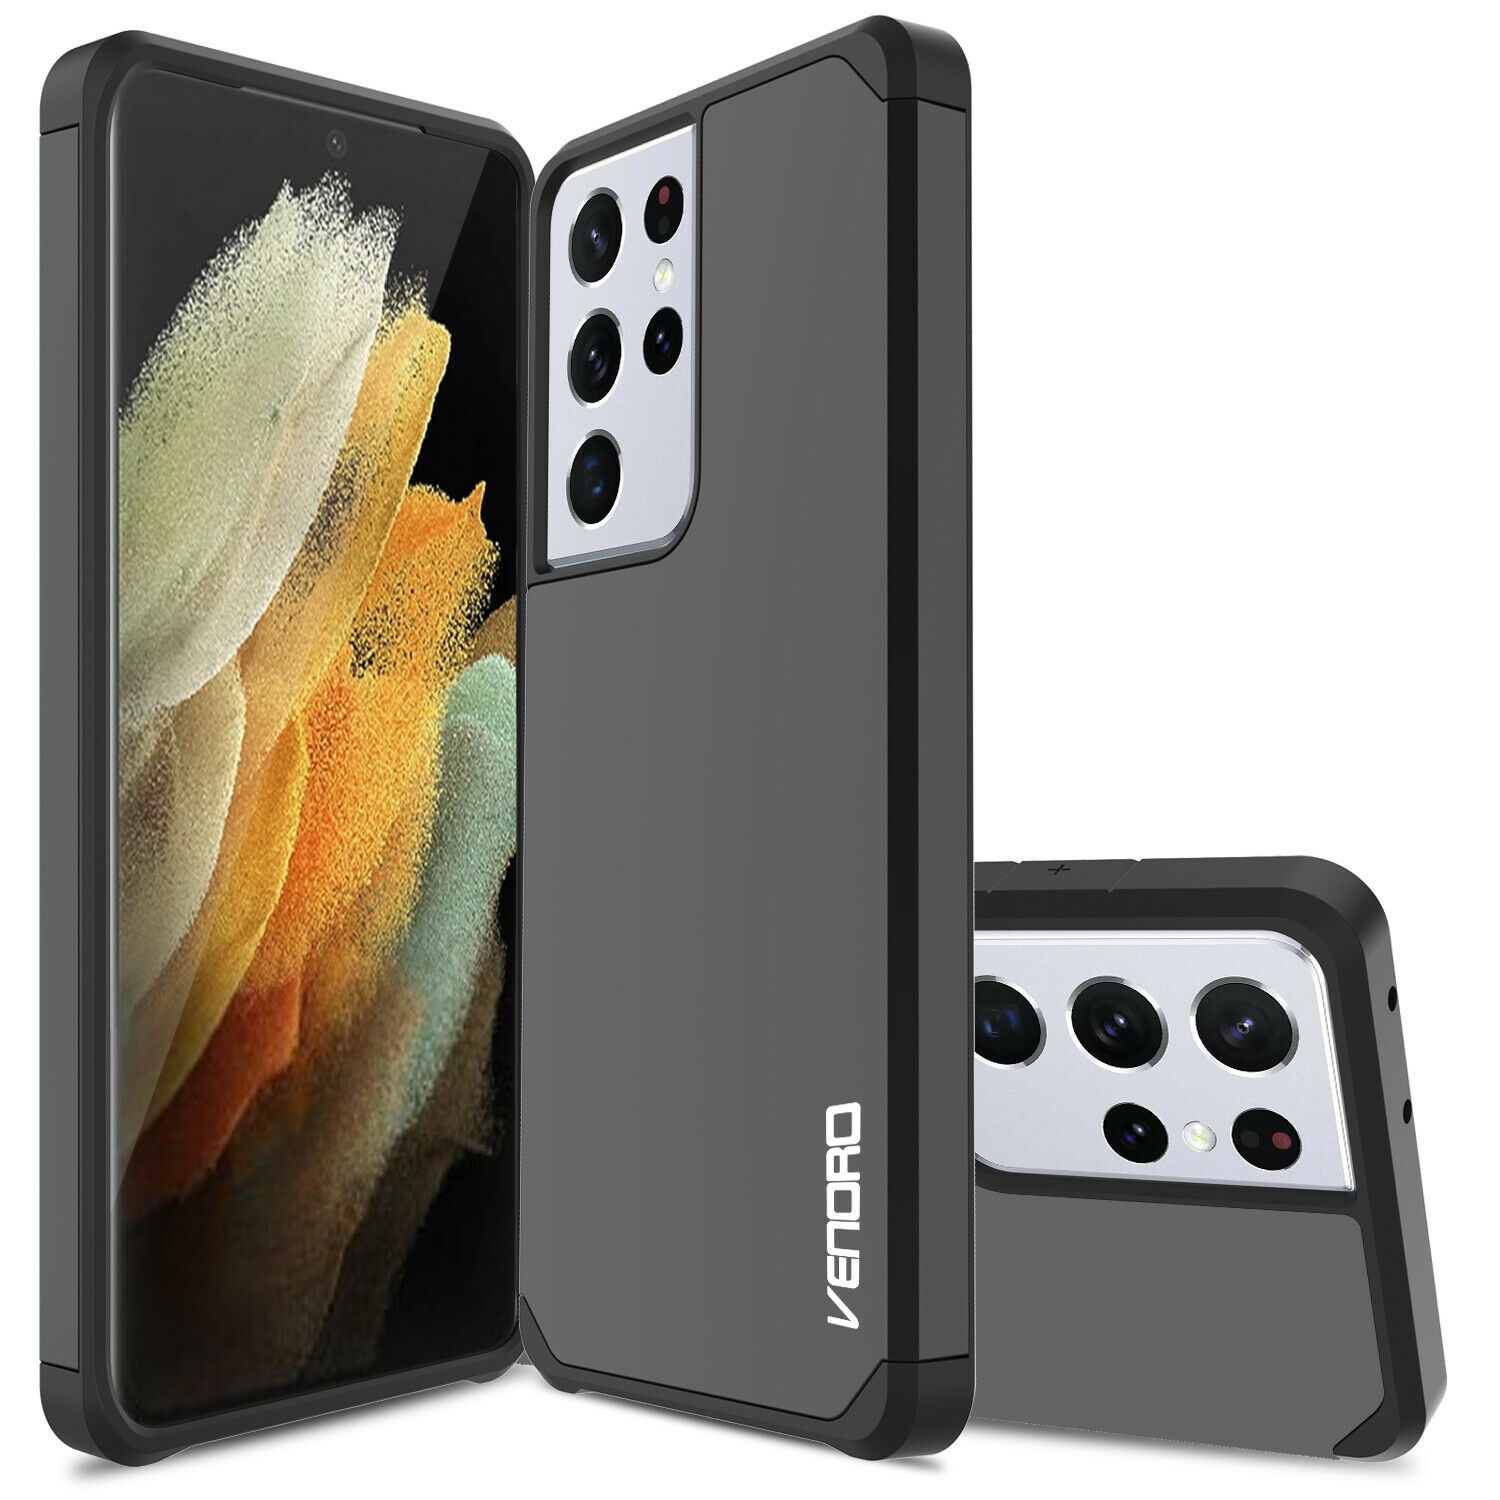 For Samsung Galaxy S21 Ultra/S21+/Plus 5G Phone Case Armor Shockproof Hard Cover Cases, Covers & Skins